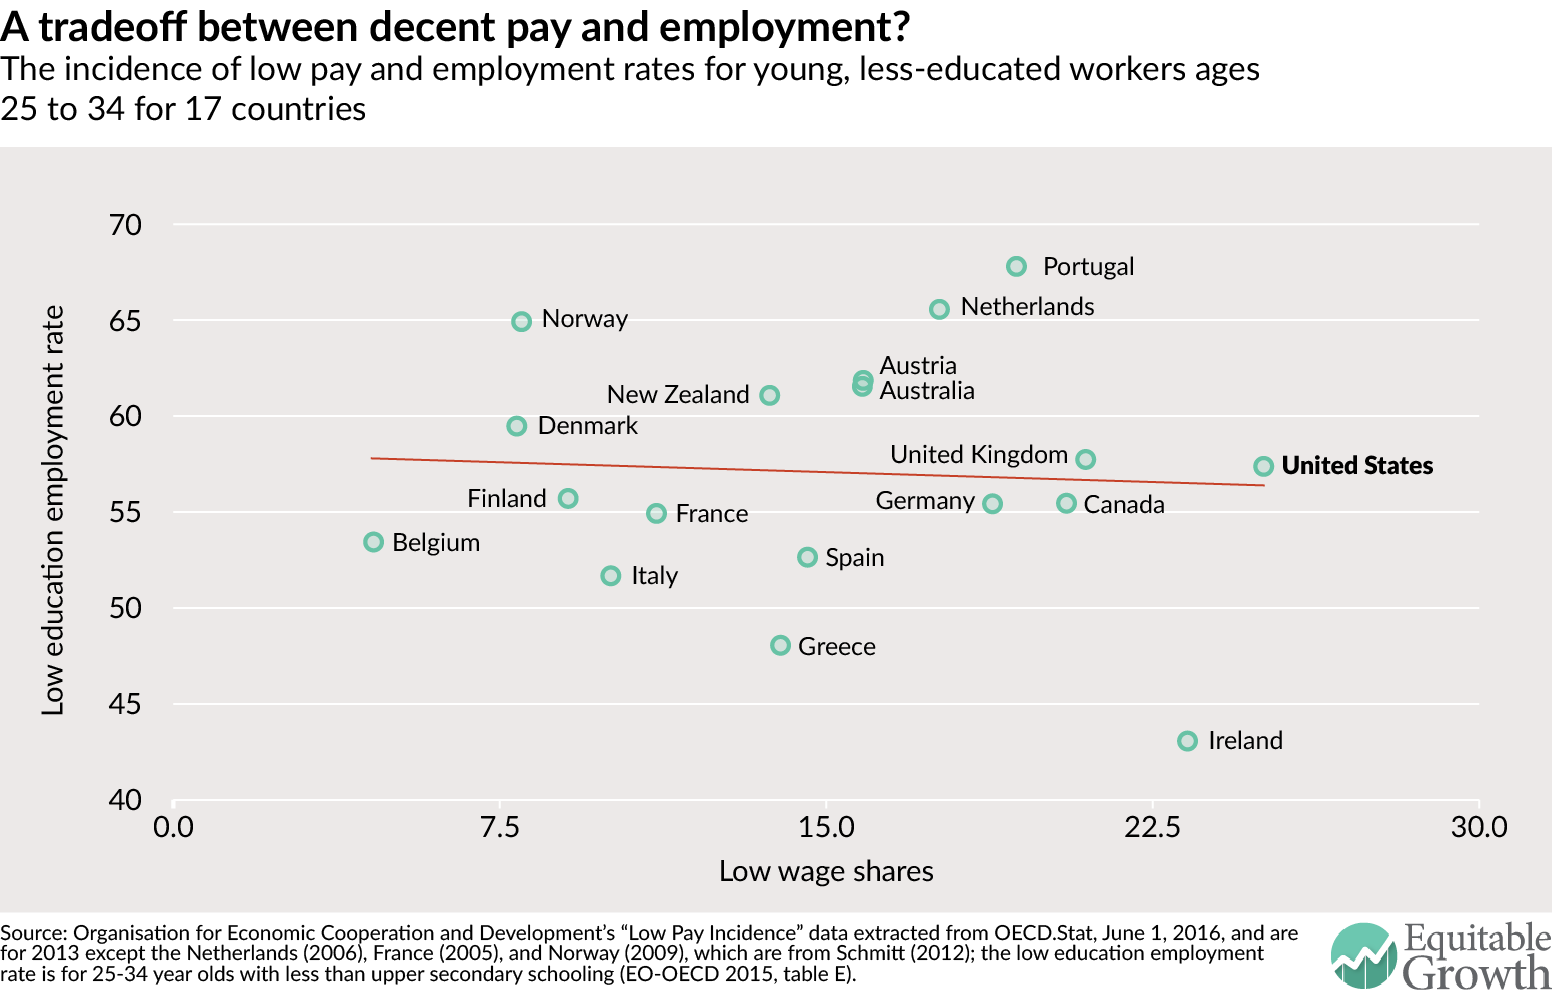 A tradeoff between decent pay and employment?